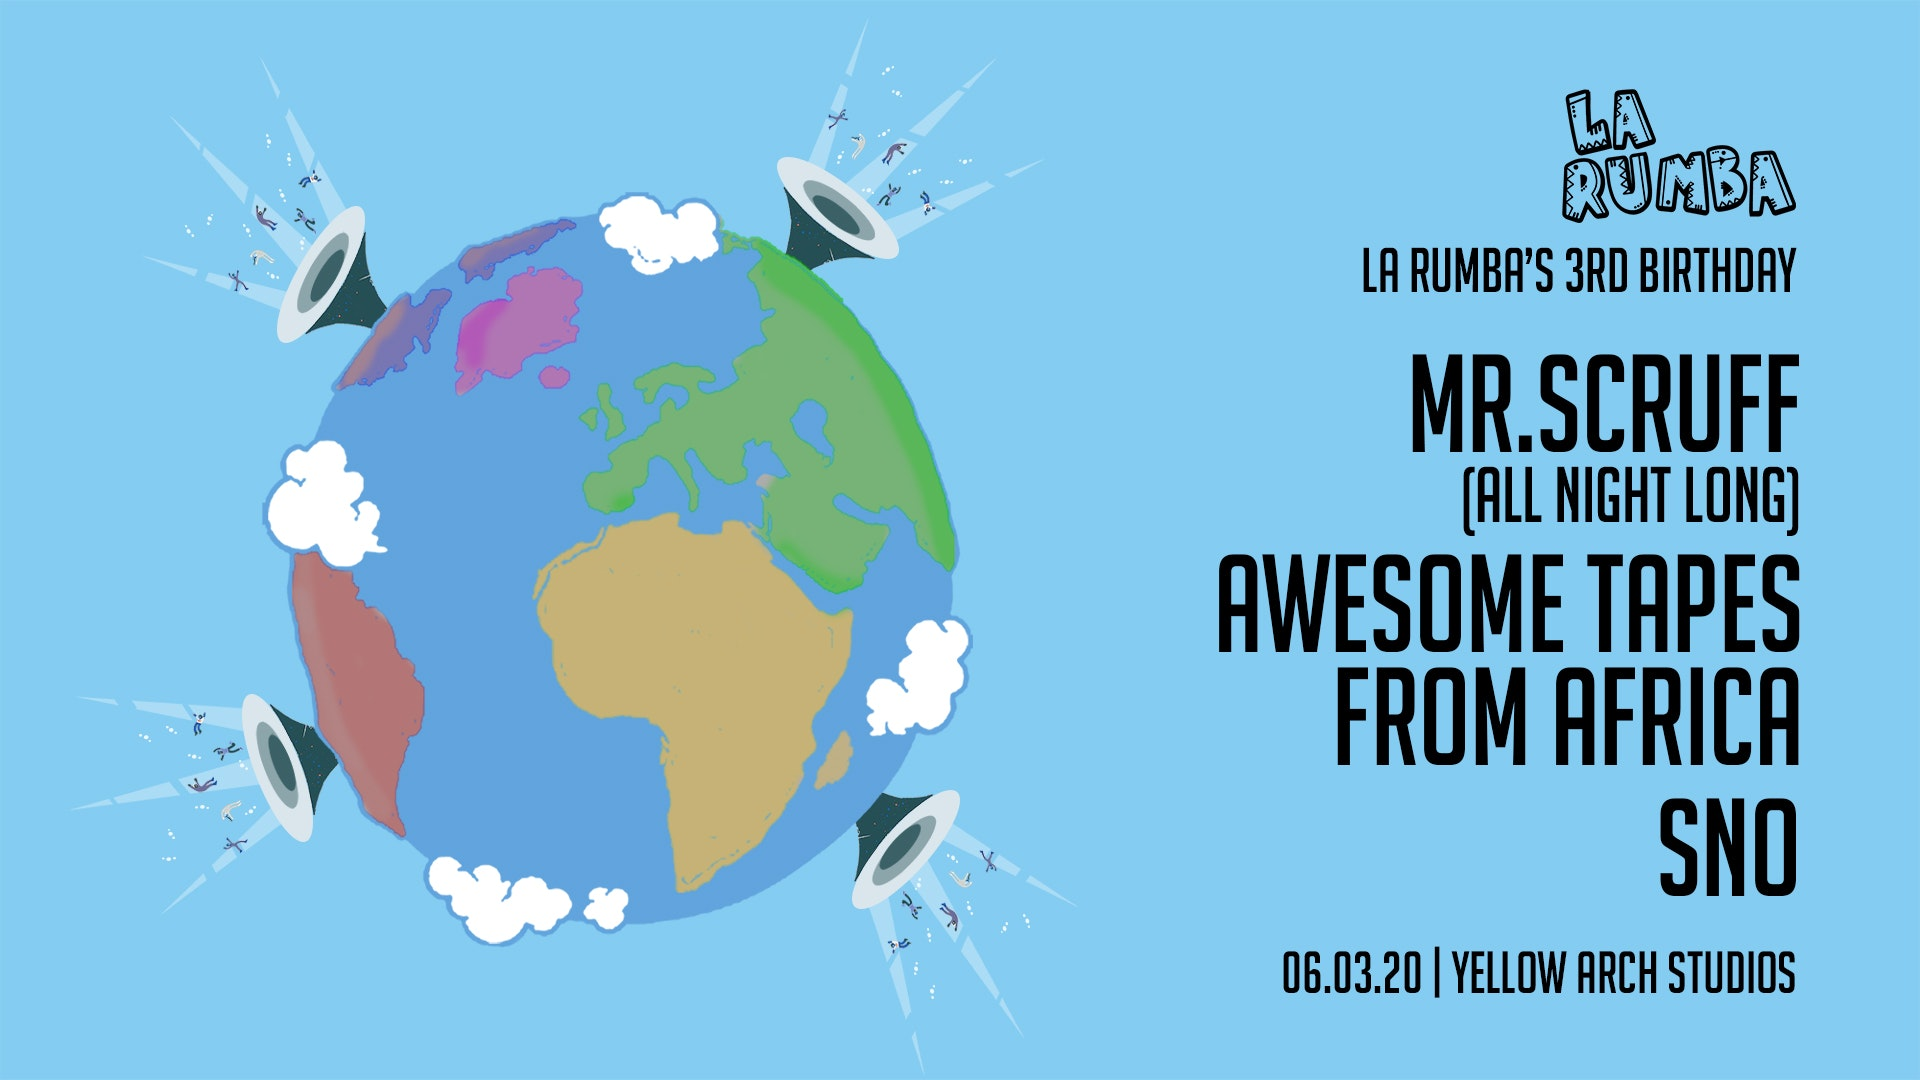 La Rumba 3rd Birthday: Mr Scruff, Awesome Tapes From Africa, SNO